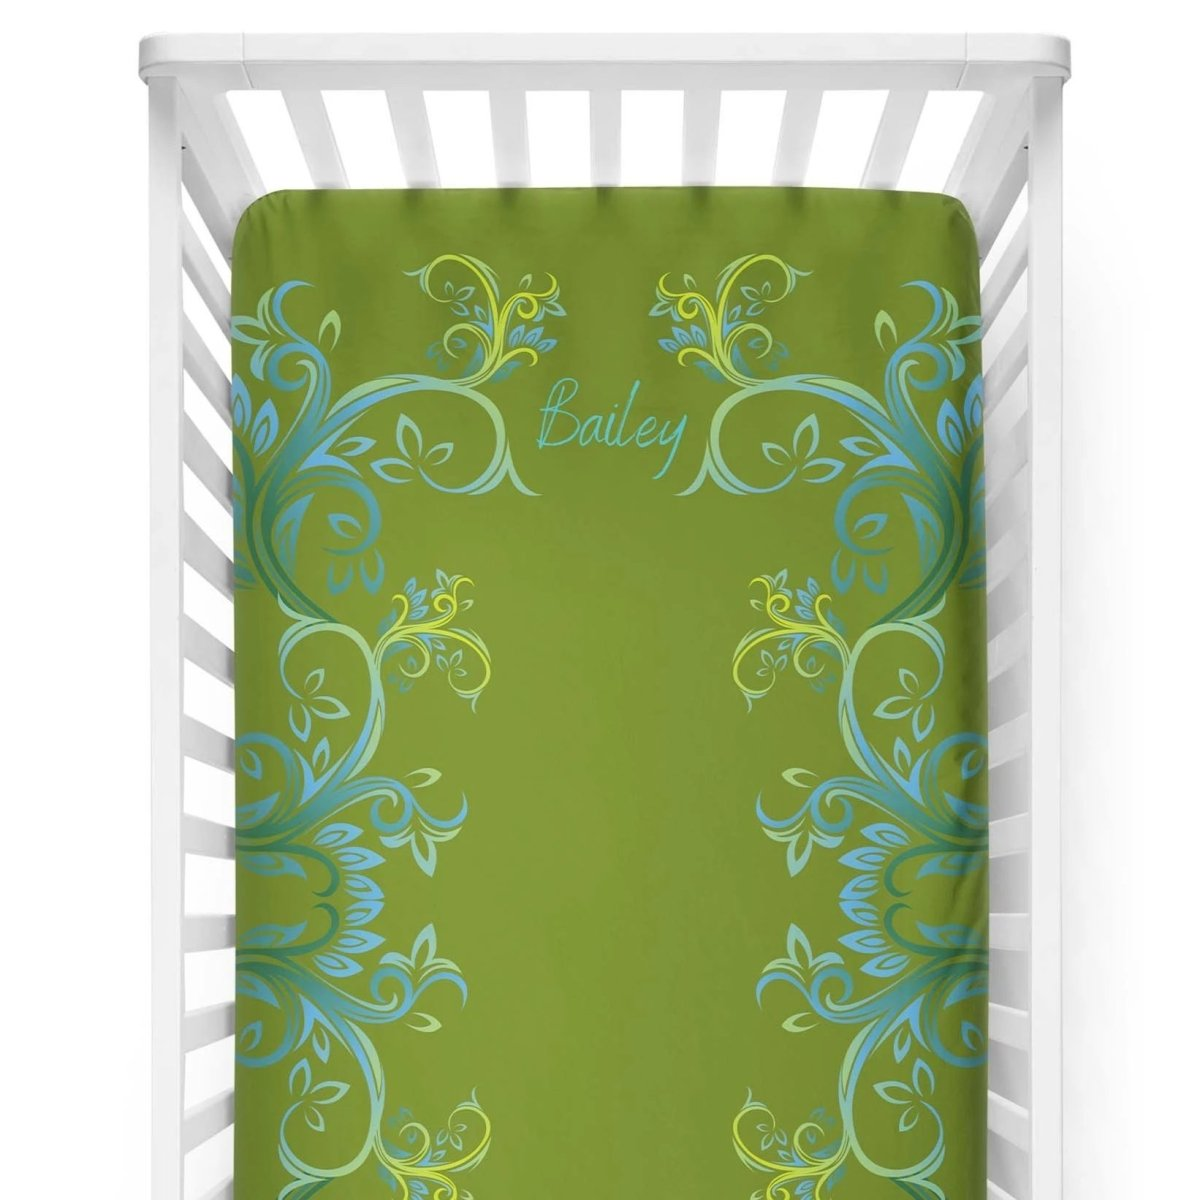 crib Millennial Apple Green - Name - Personalized Fitted Crib Sheet - ZERO TO THREE CLUB crib